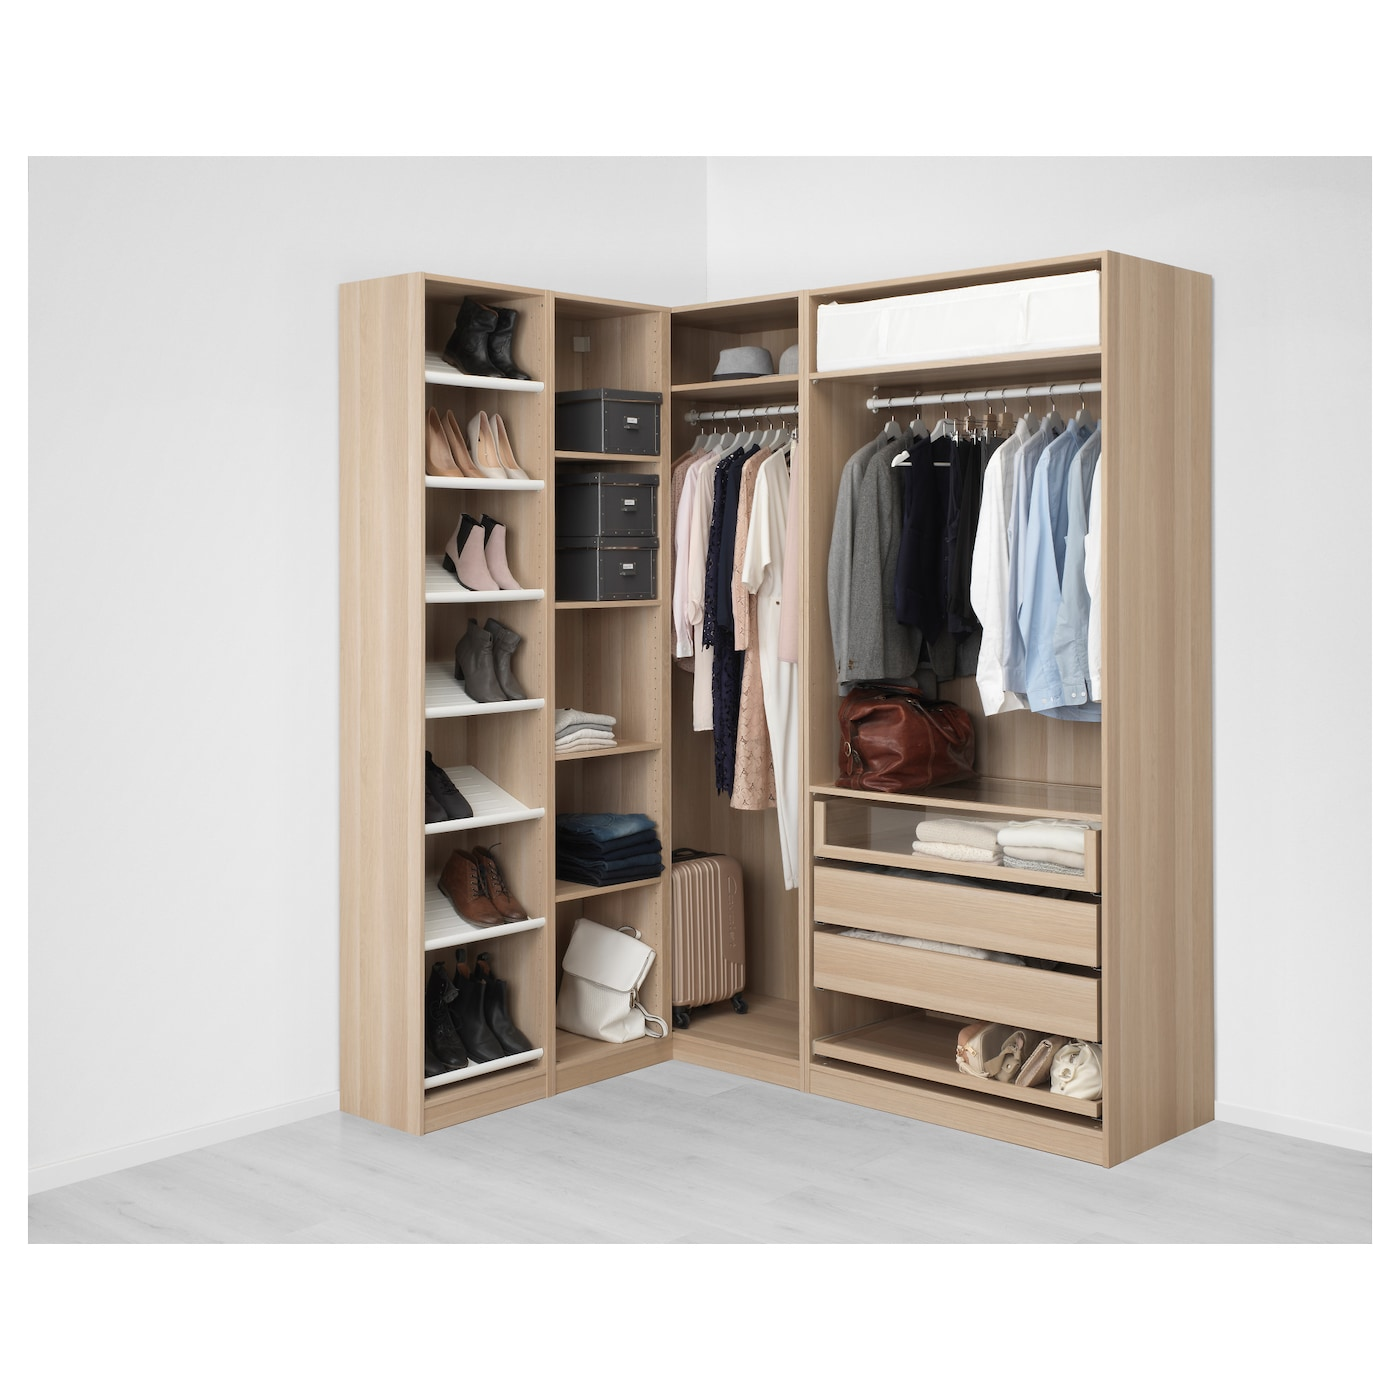 PAX Corner Wardrobe White Stained Oak Effect/nexus Vikedal ...   Photo#